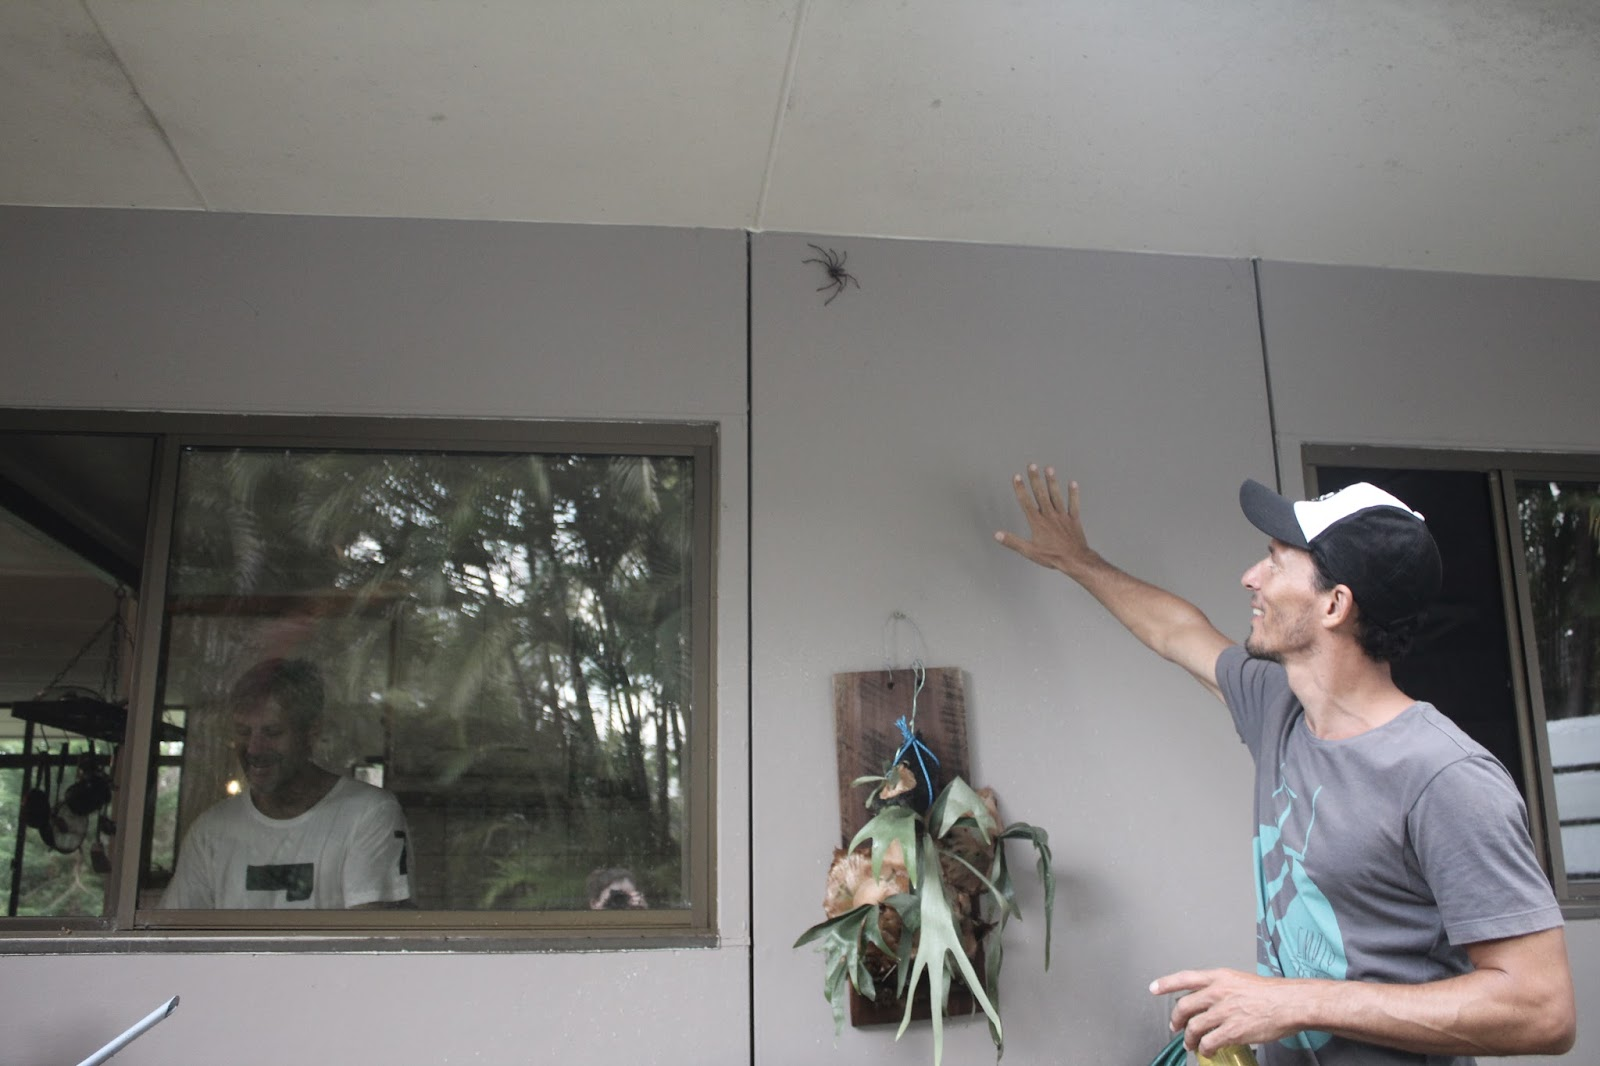 16-03-2016-australia-siebert-surfboards-13